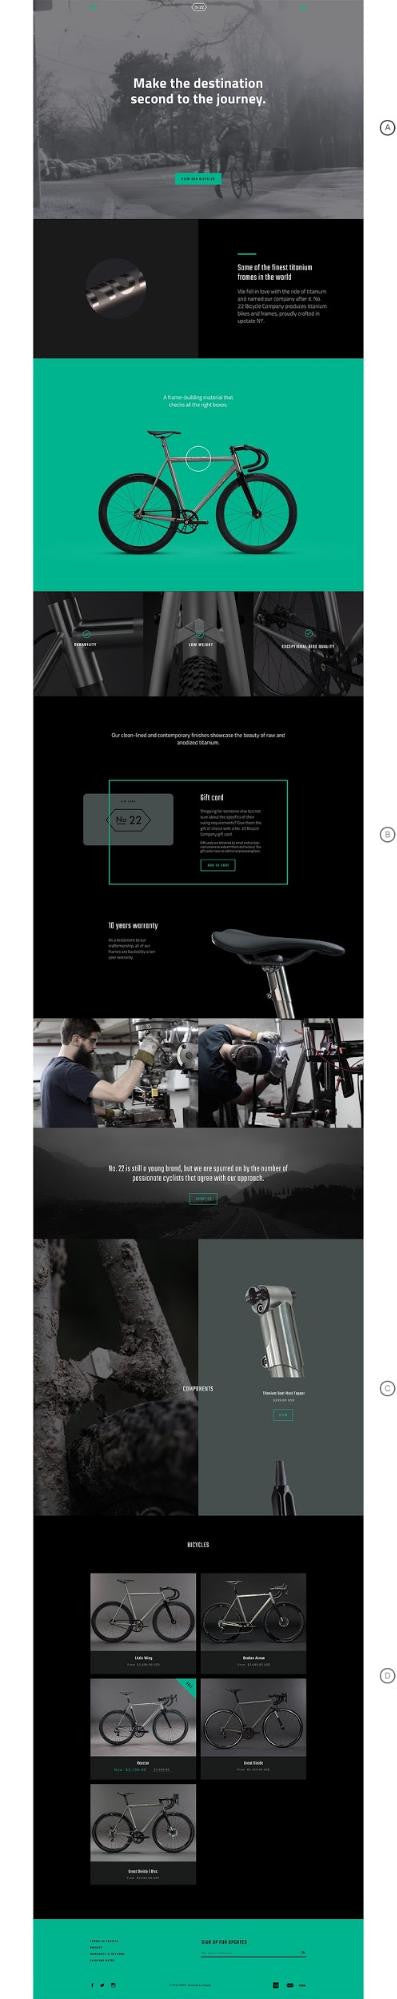 Building narrative shopify new theme for storytelling: Bike